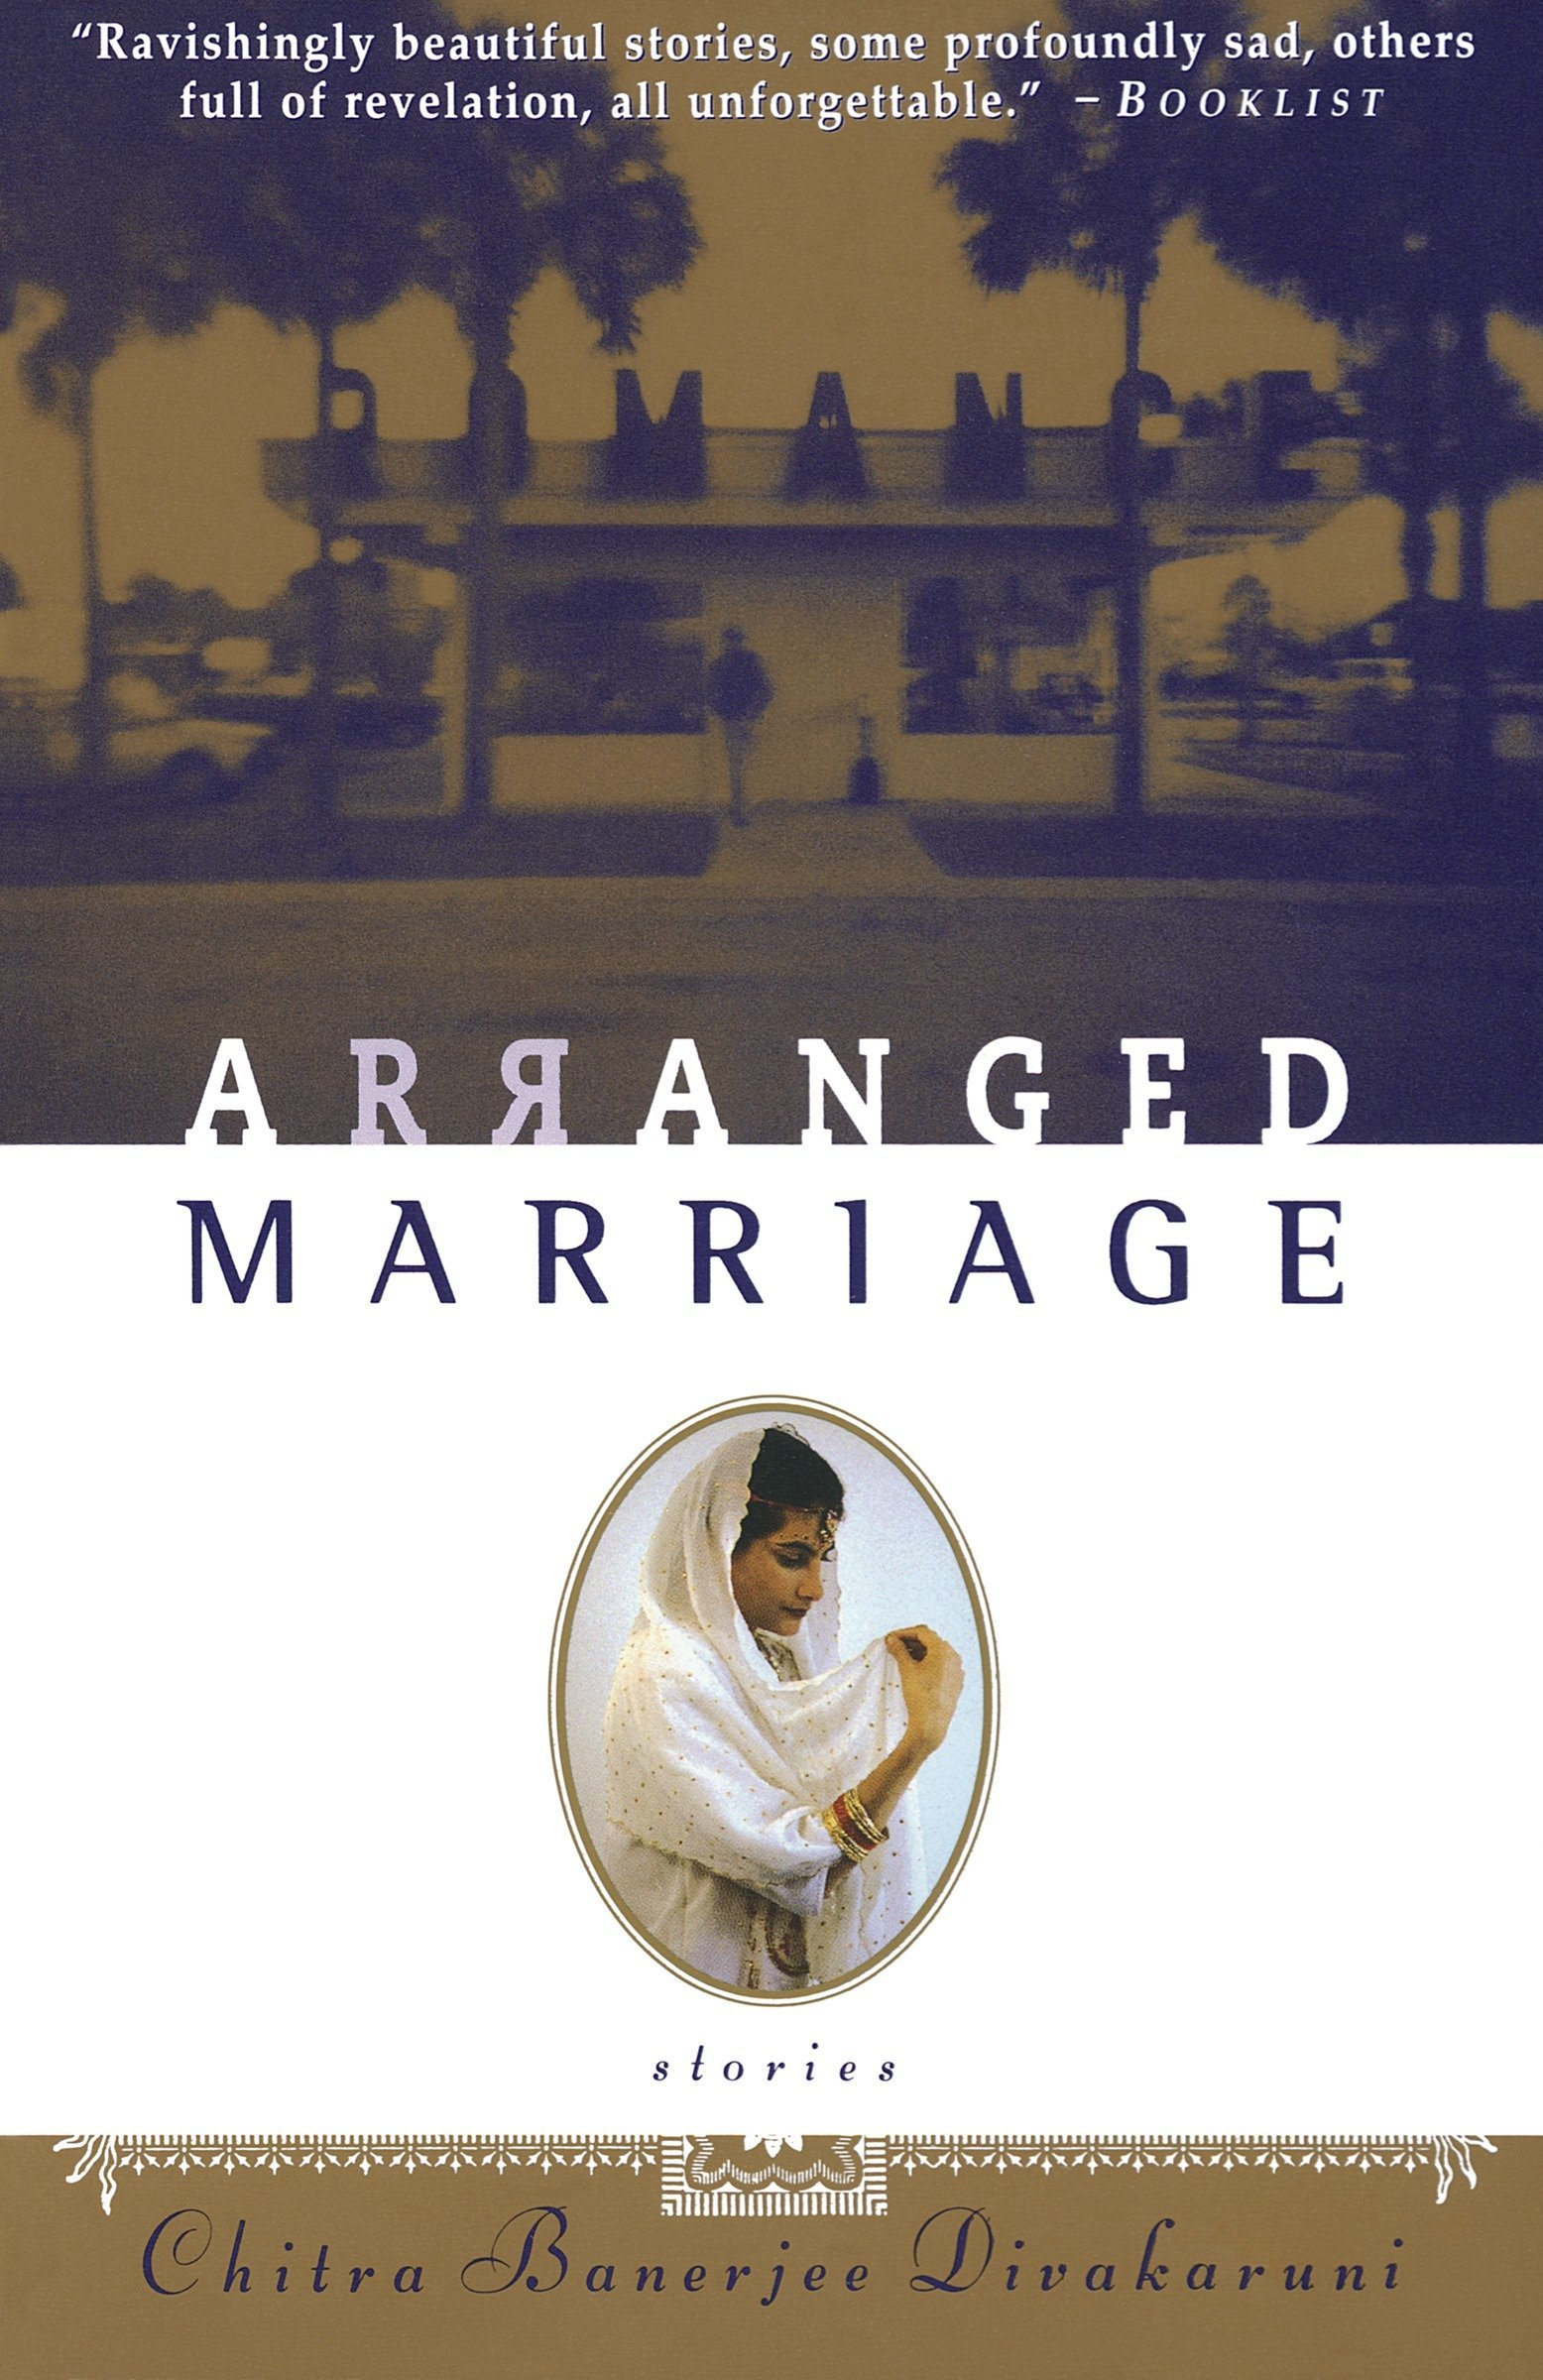 Amazon com: Arranged Marriage: Stories (9780385483506): Chitra